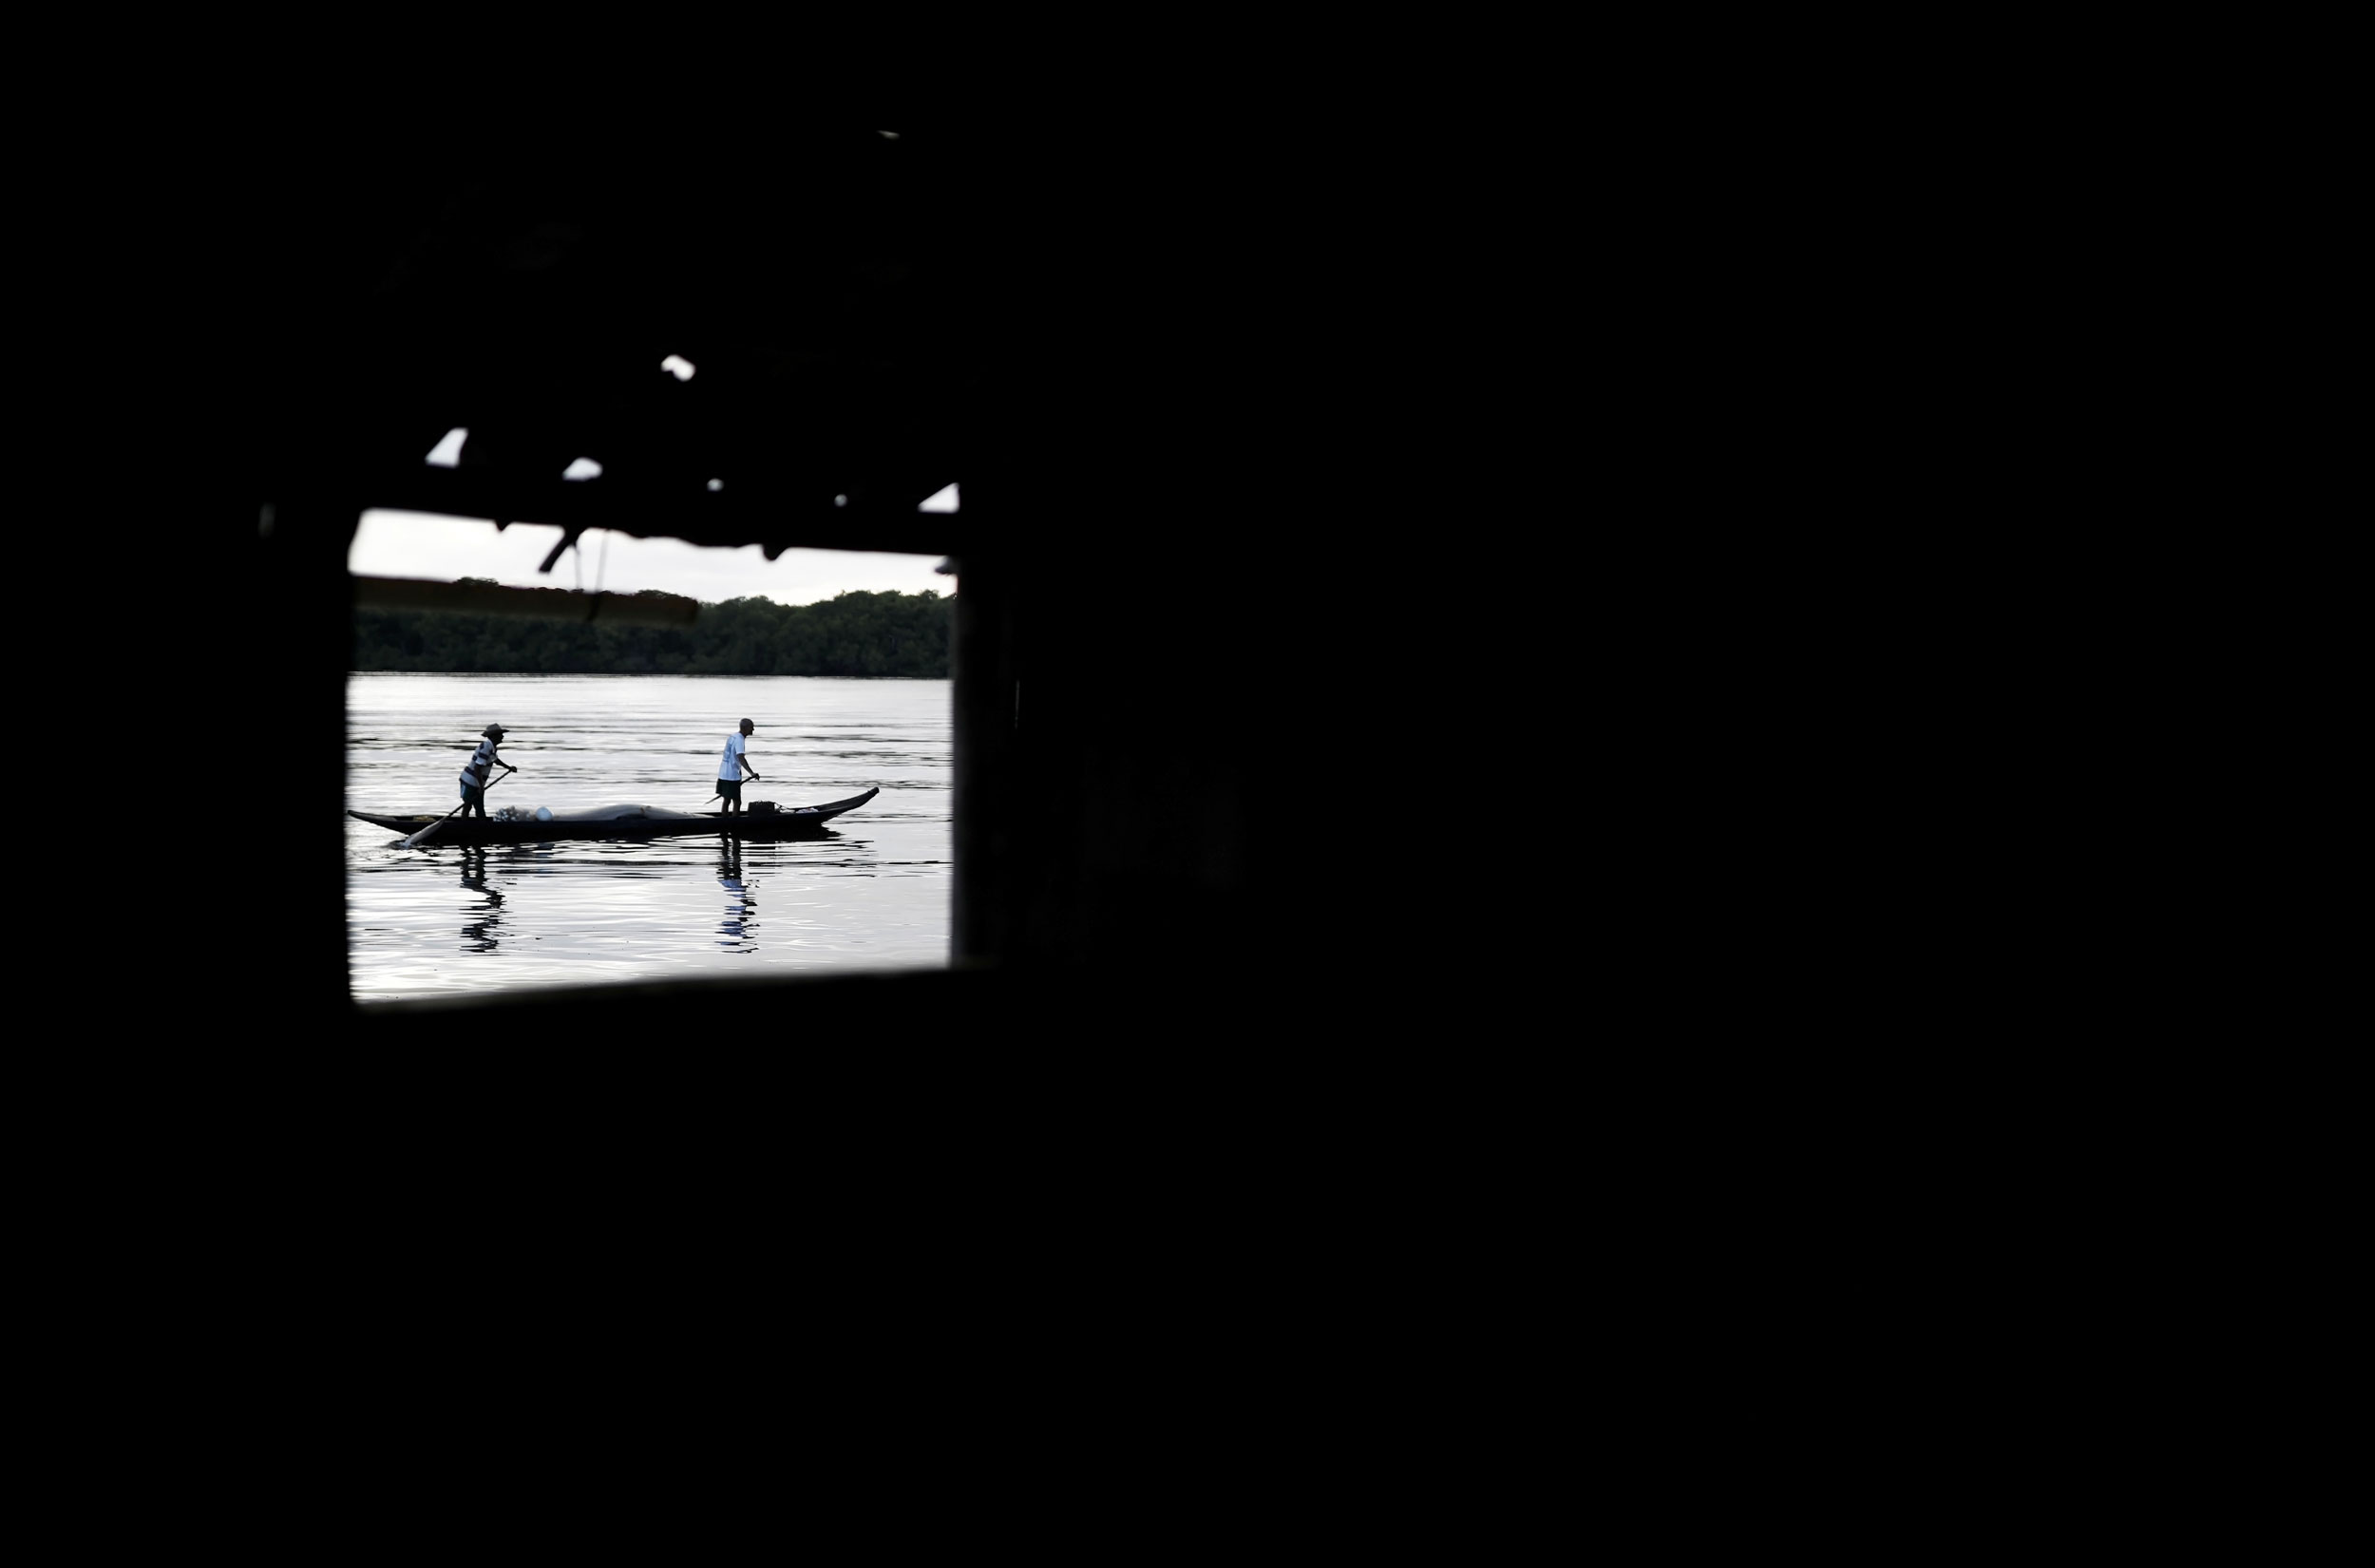 A dark photograph with a bright window showing people on a boat.